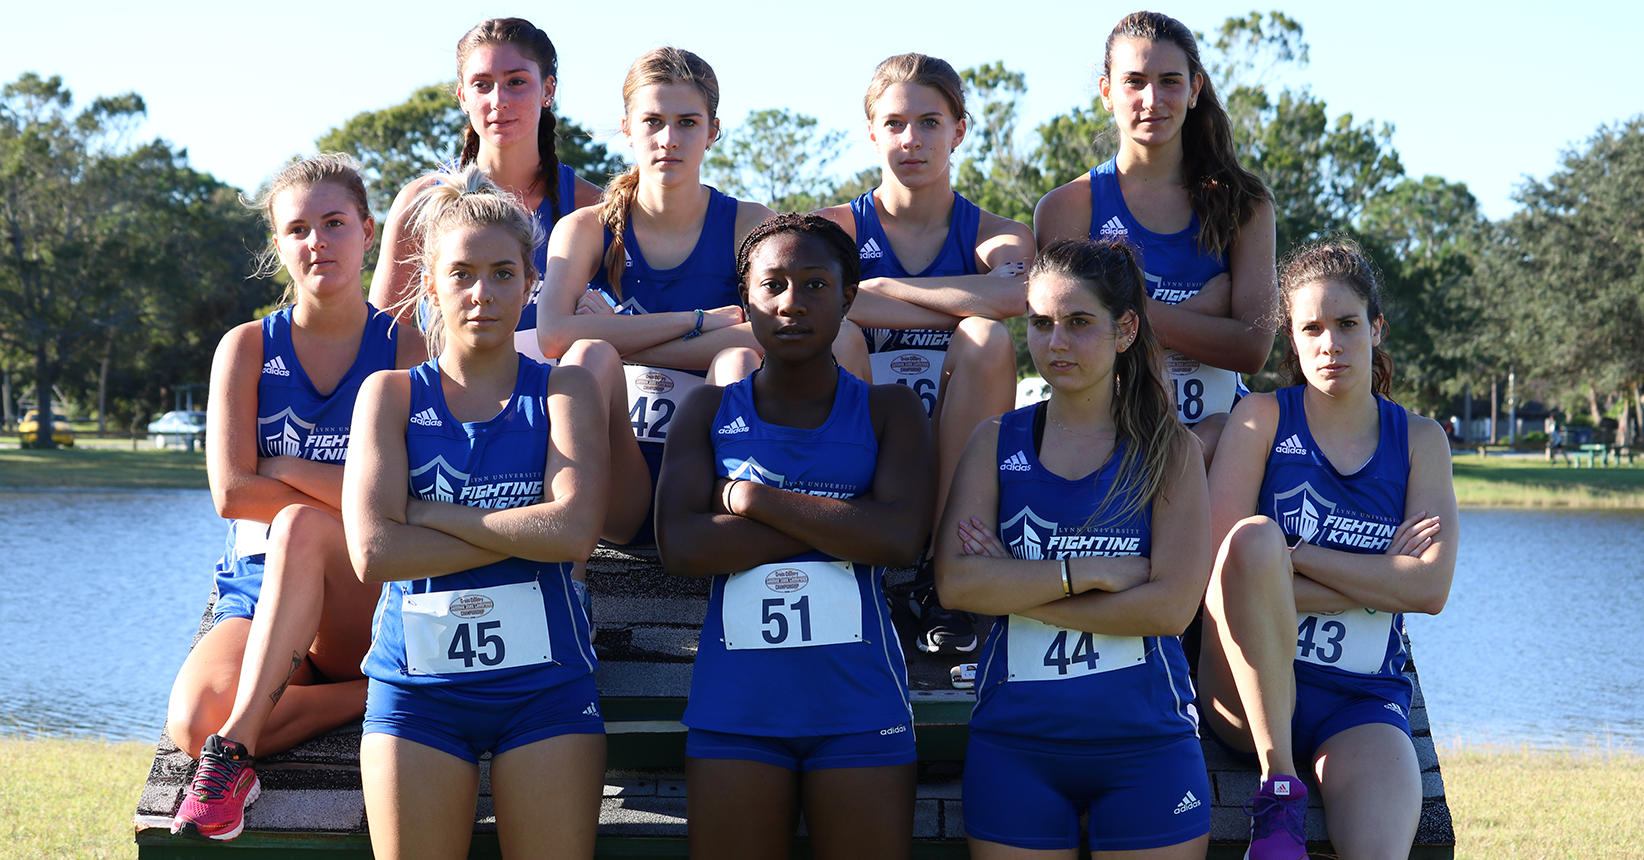 You get a PR! You get a PR! Everyone gets a PR! Lynn Cross Country Sets Personal Record Times at SSC Championships